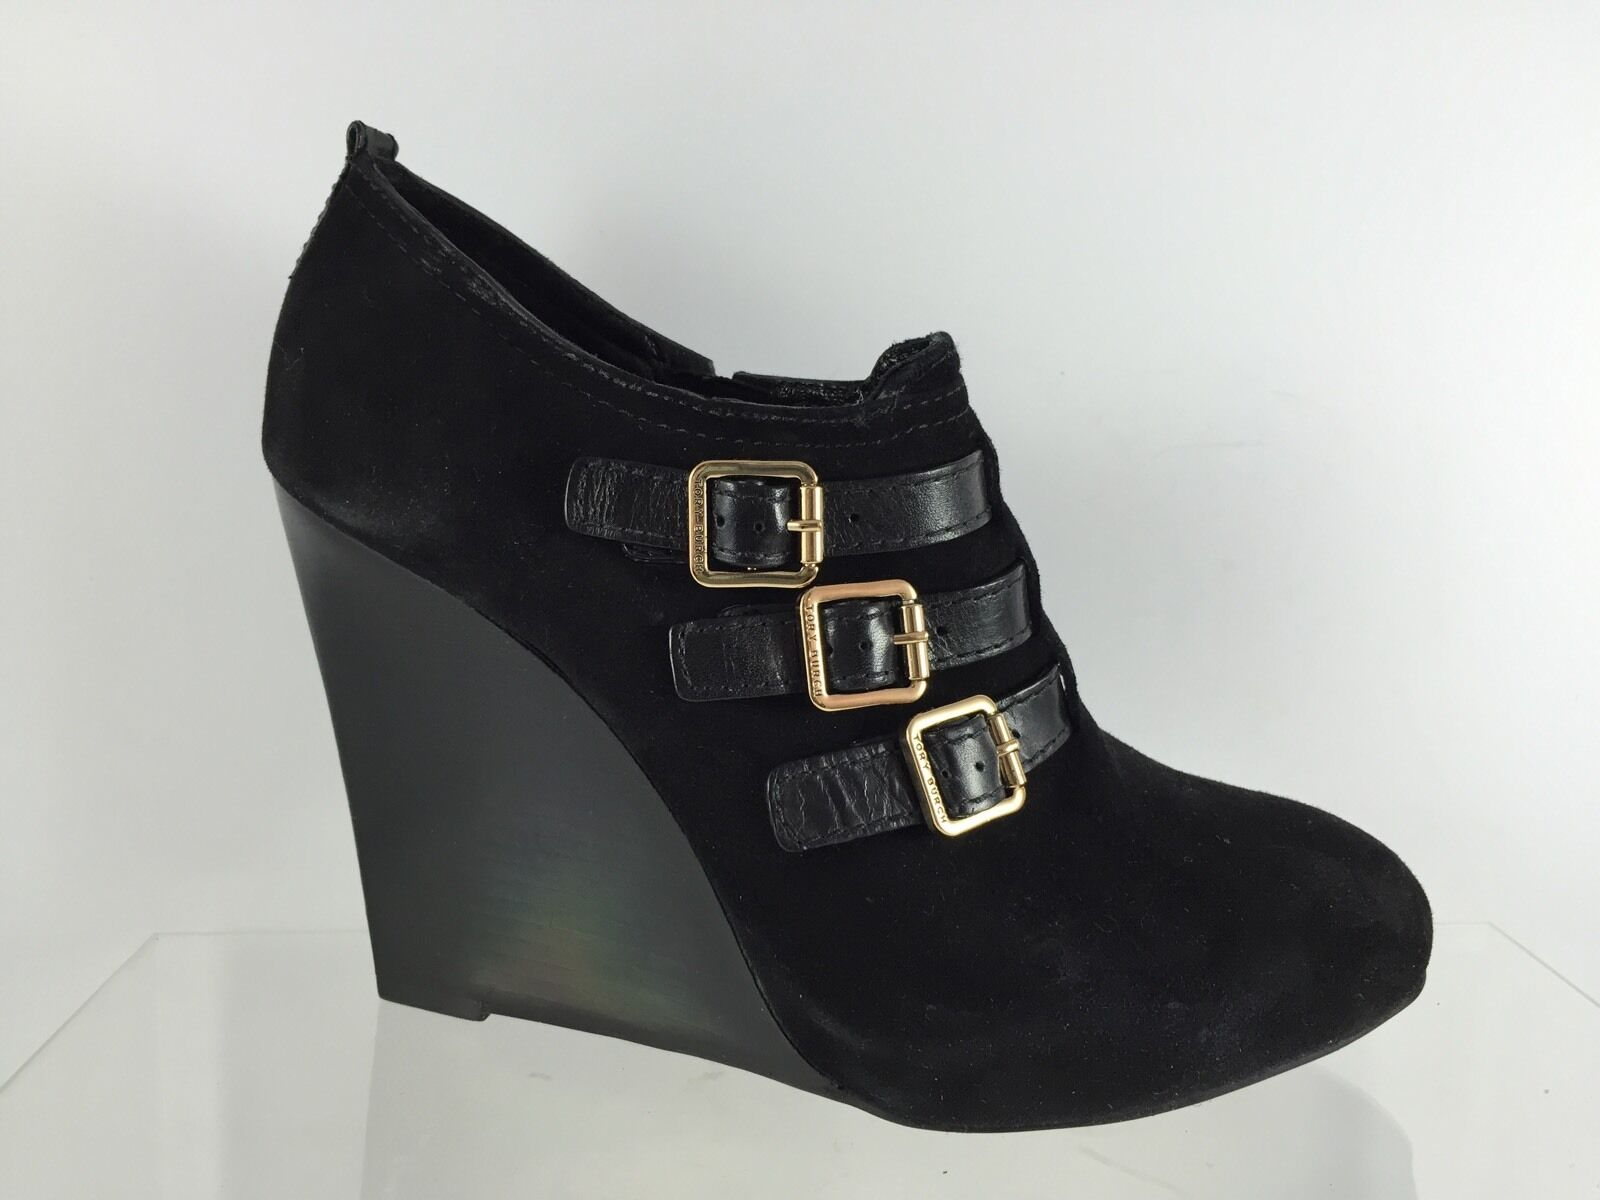 Tory Burch Womens Black Leather Ankle Boots 9 M